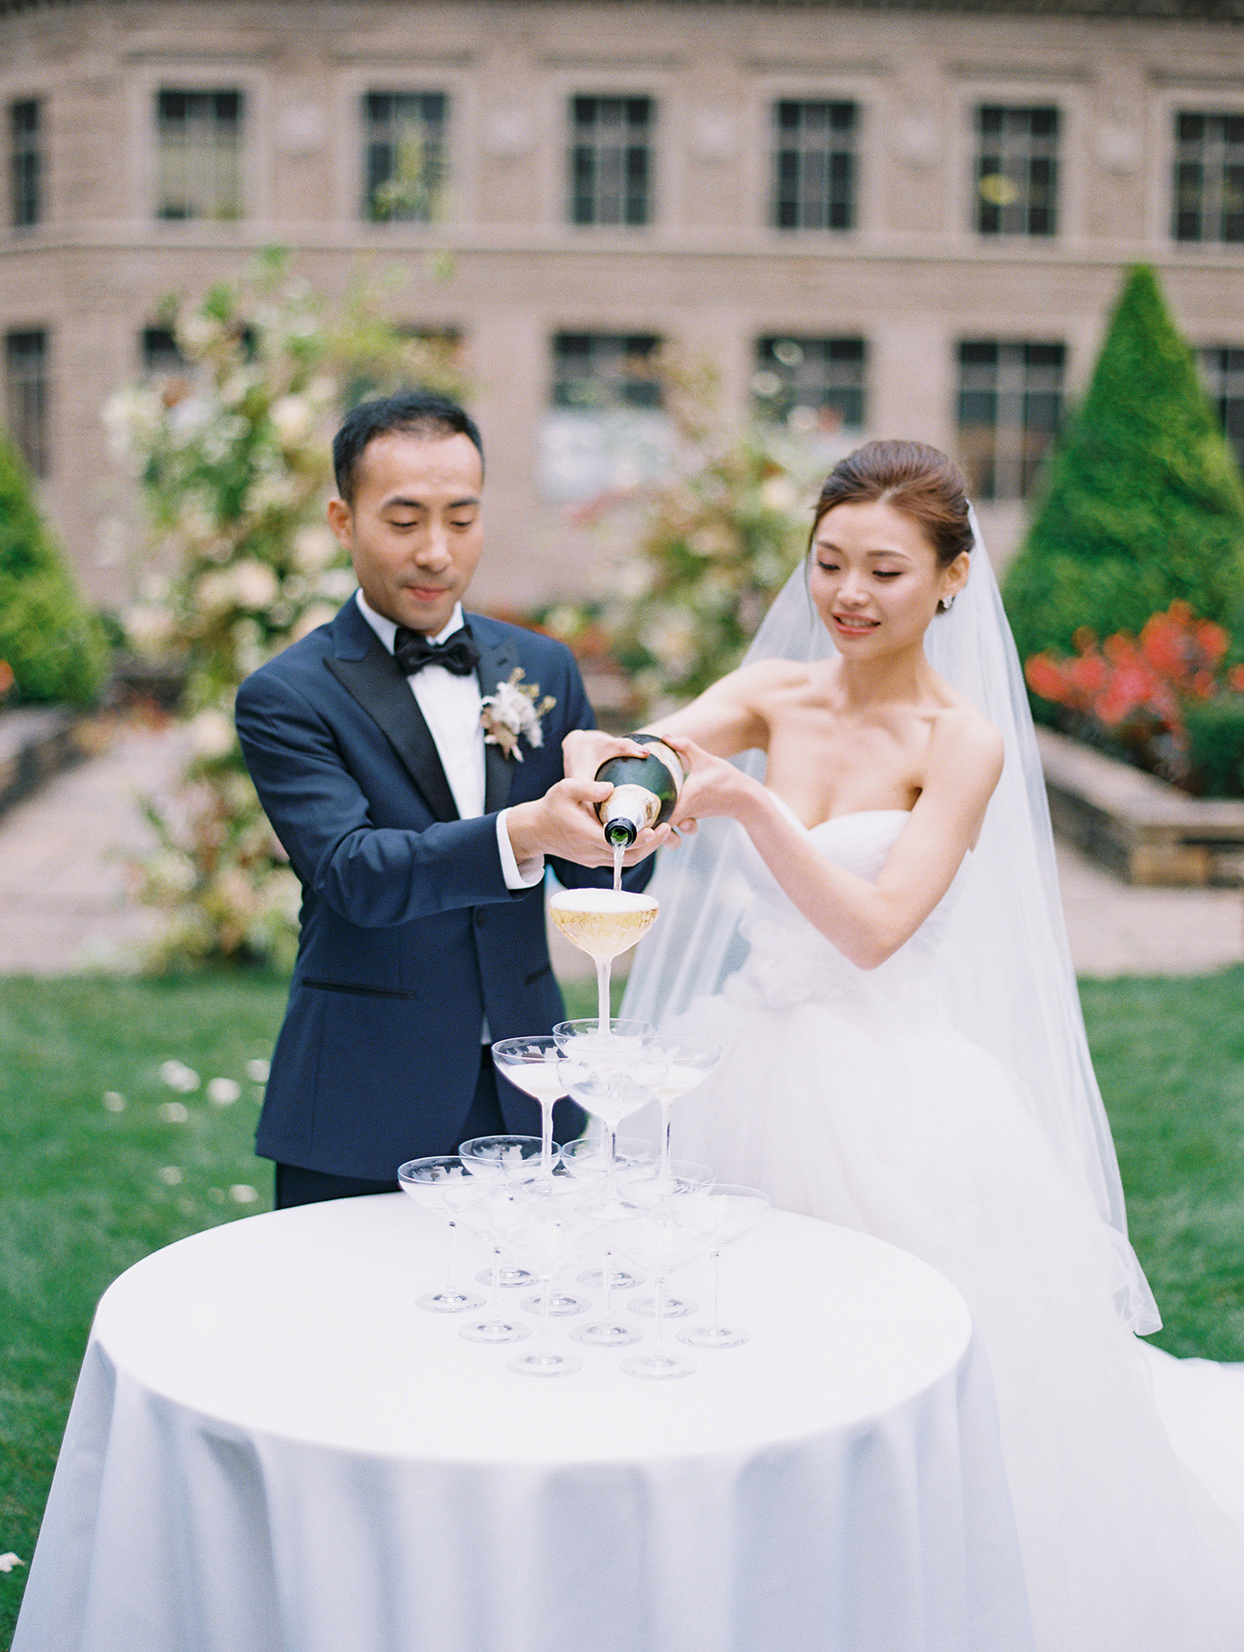 wedding couple pouring champagne in glass tower